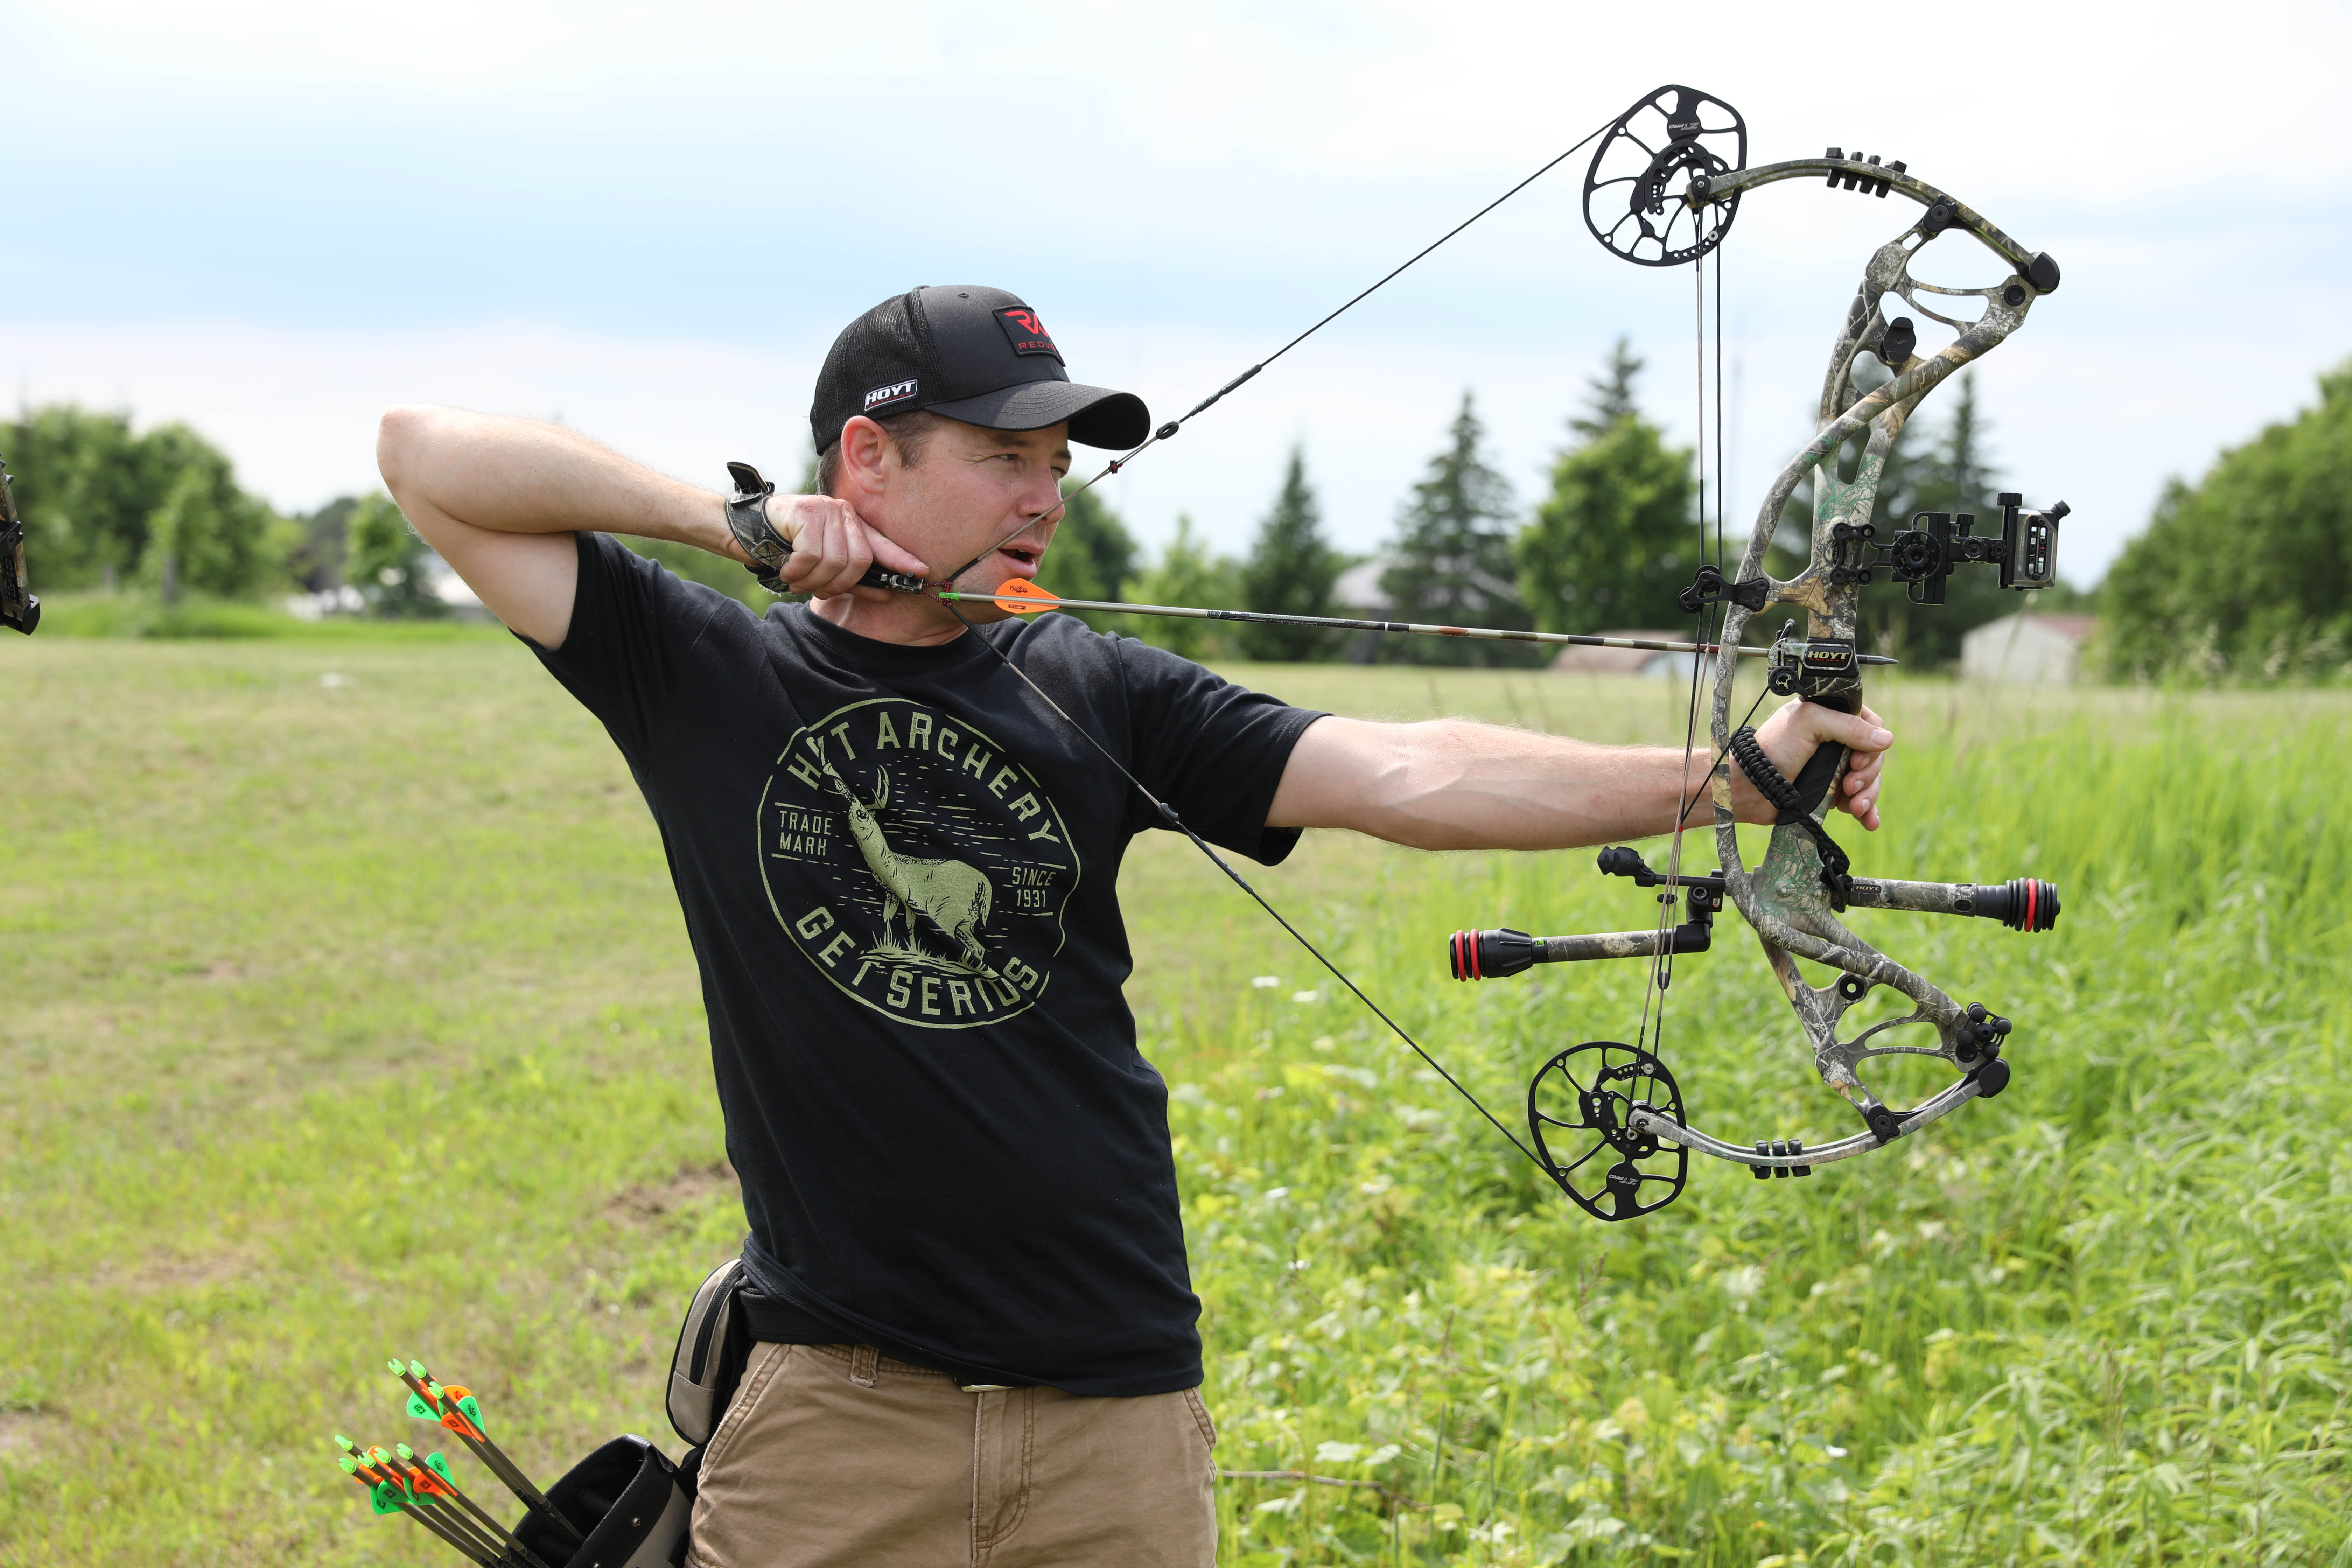 hunter with a compound bow reading a shot